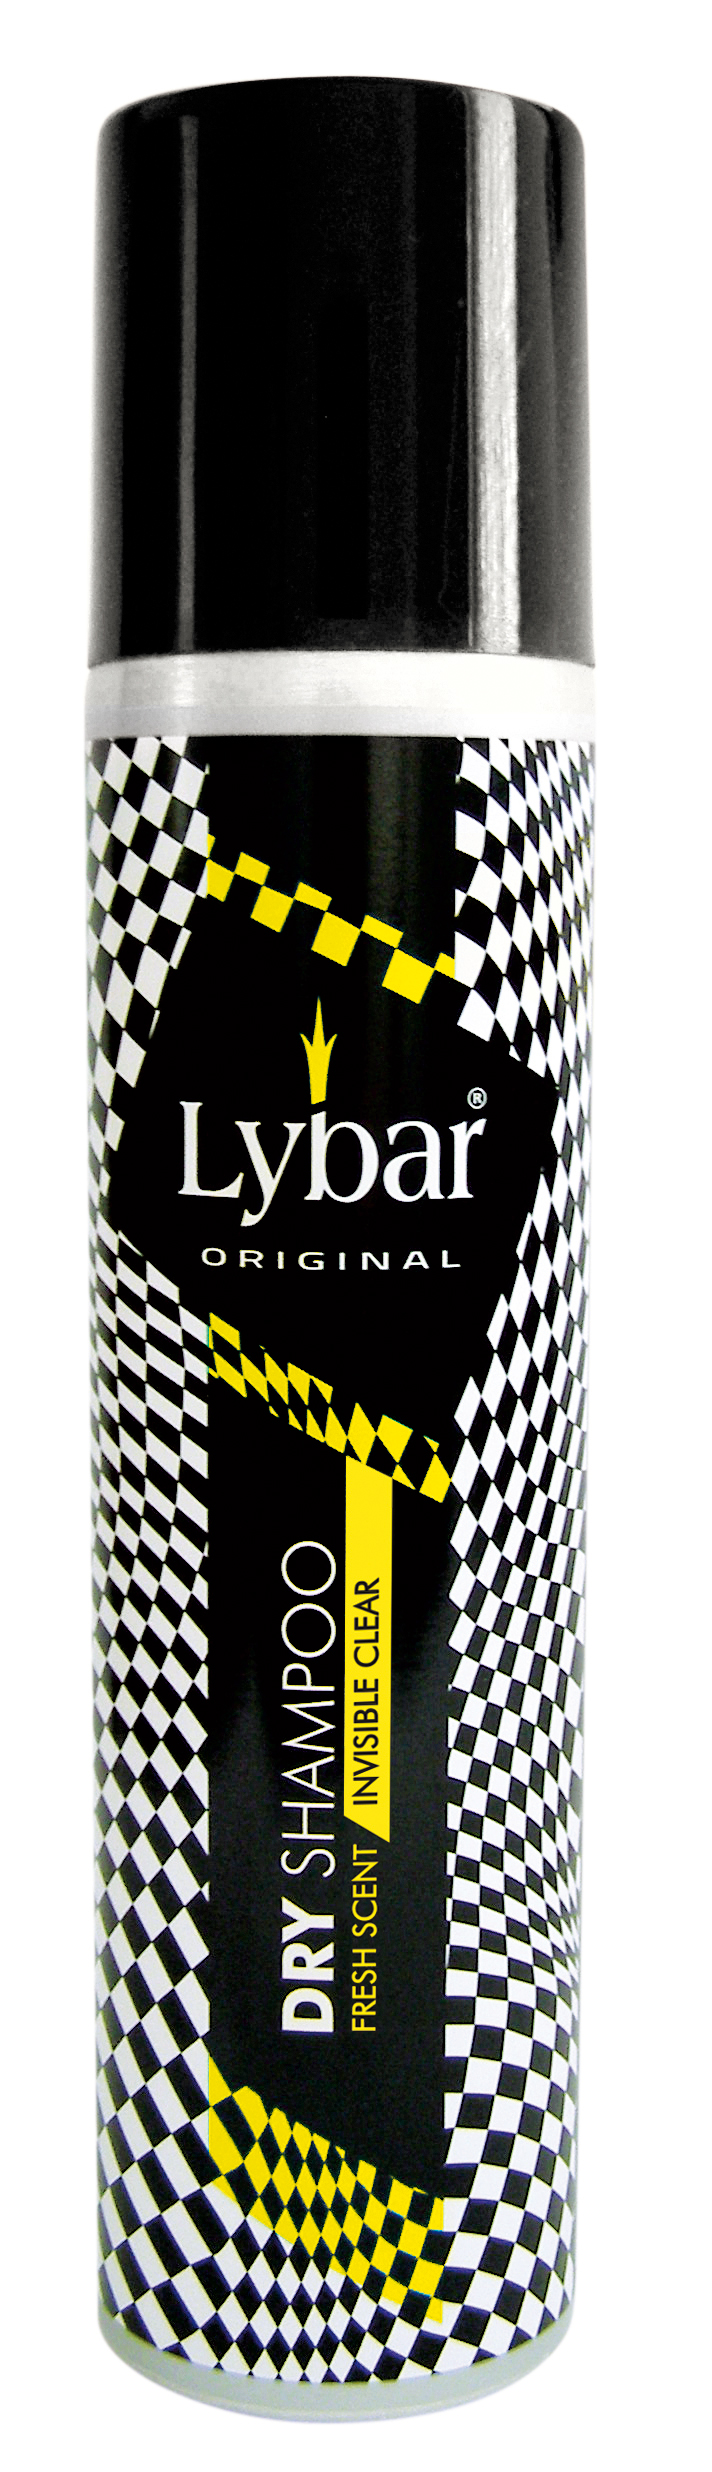 Lybar Original Fresh Scent suchý šampon Invisible clear, 250 ml